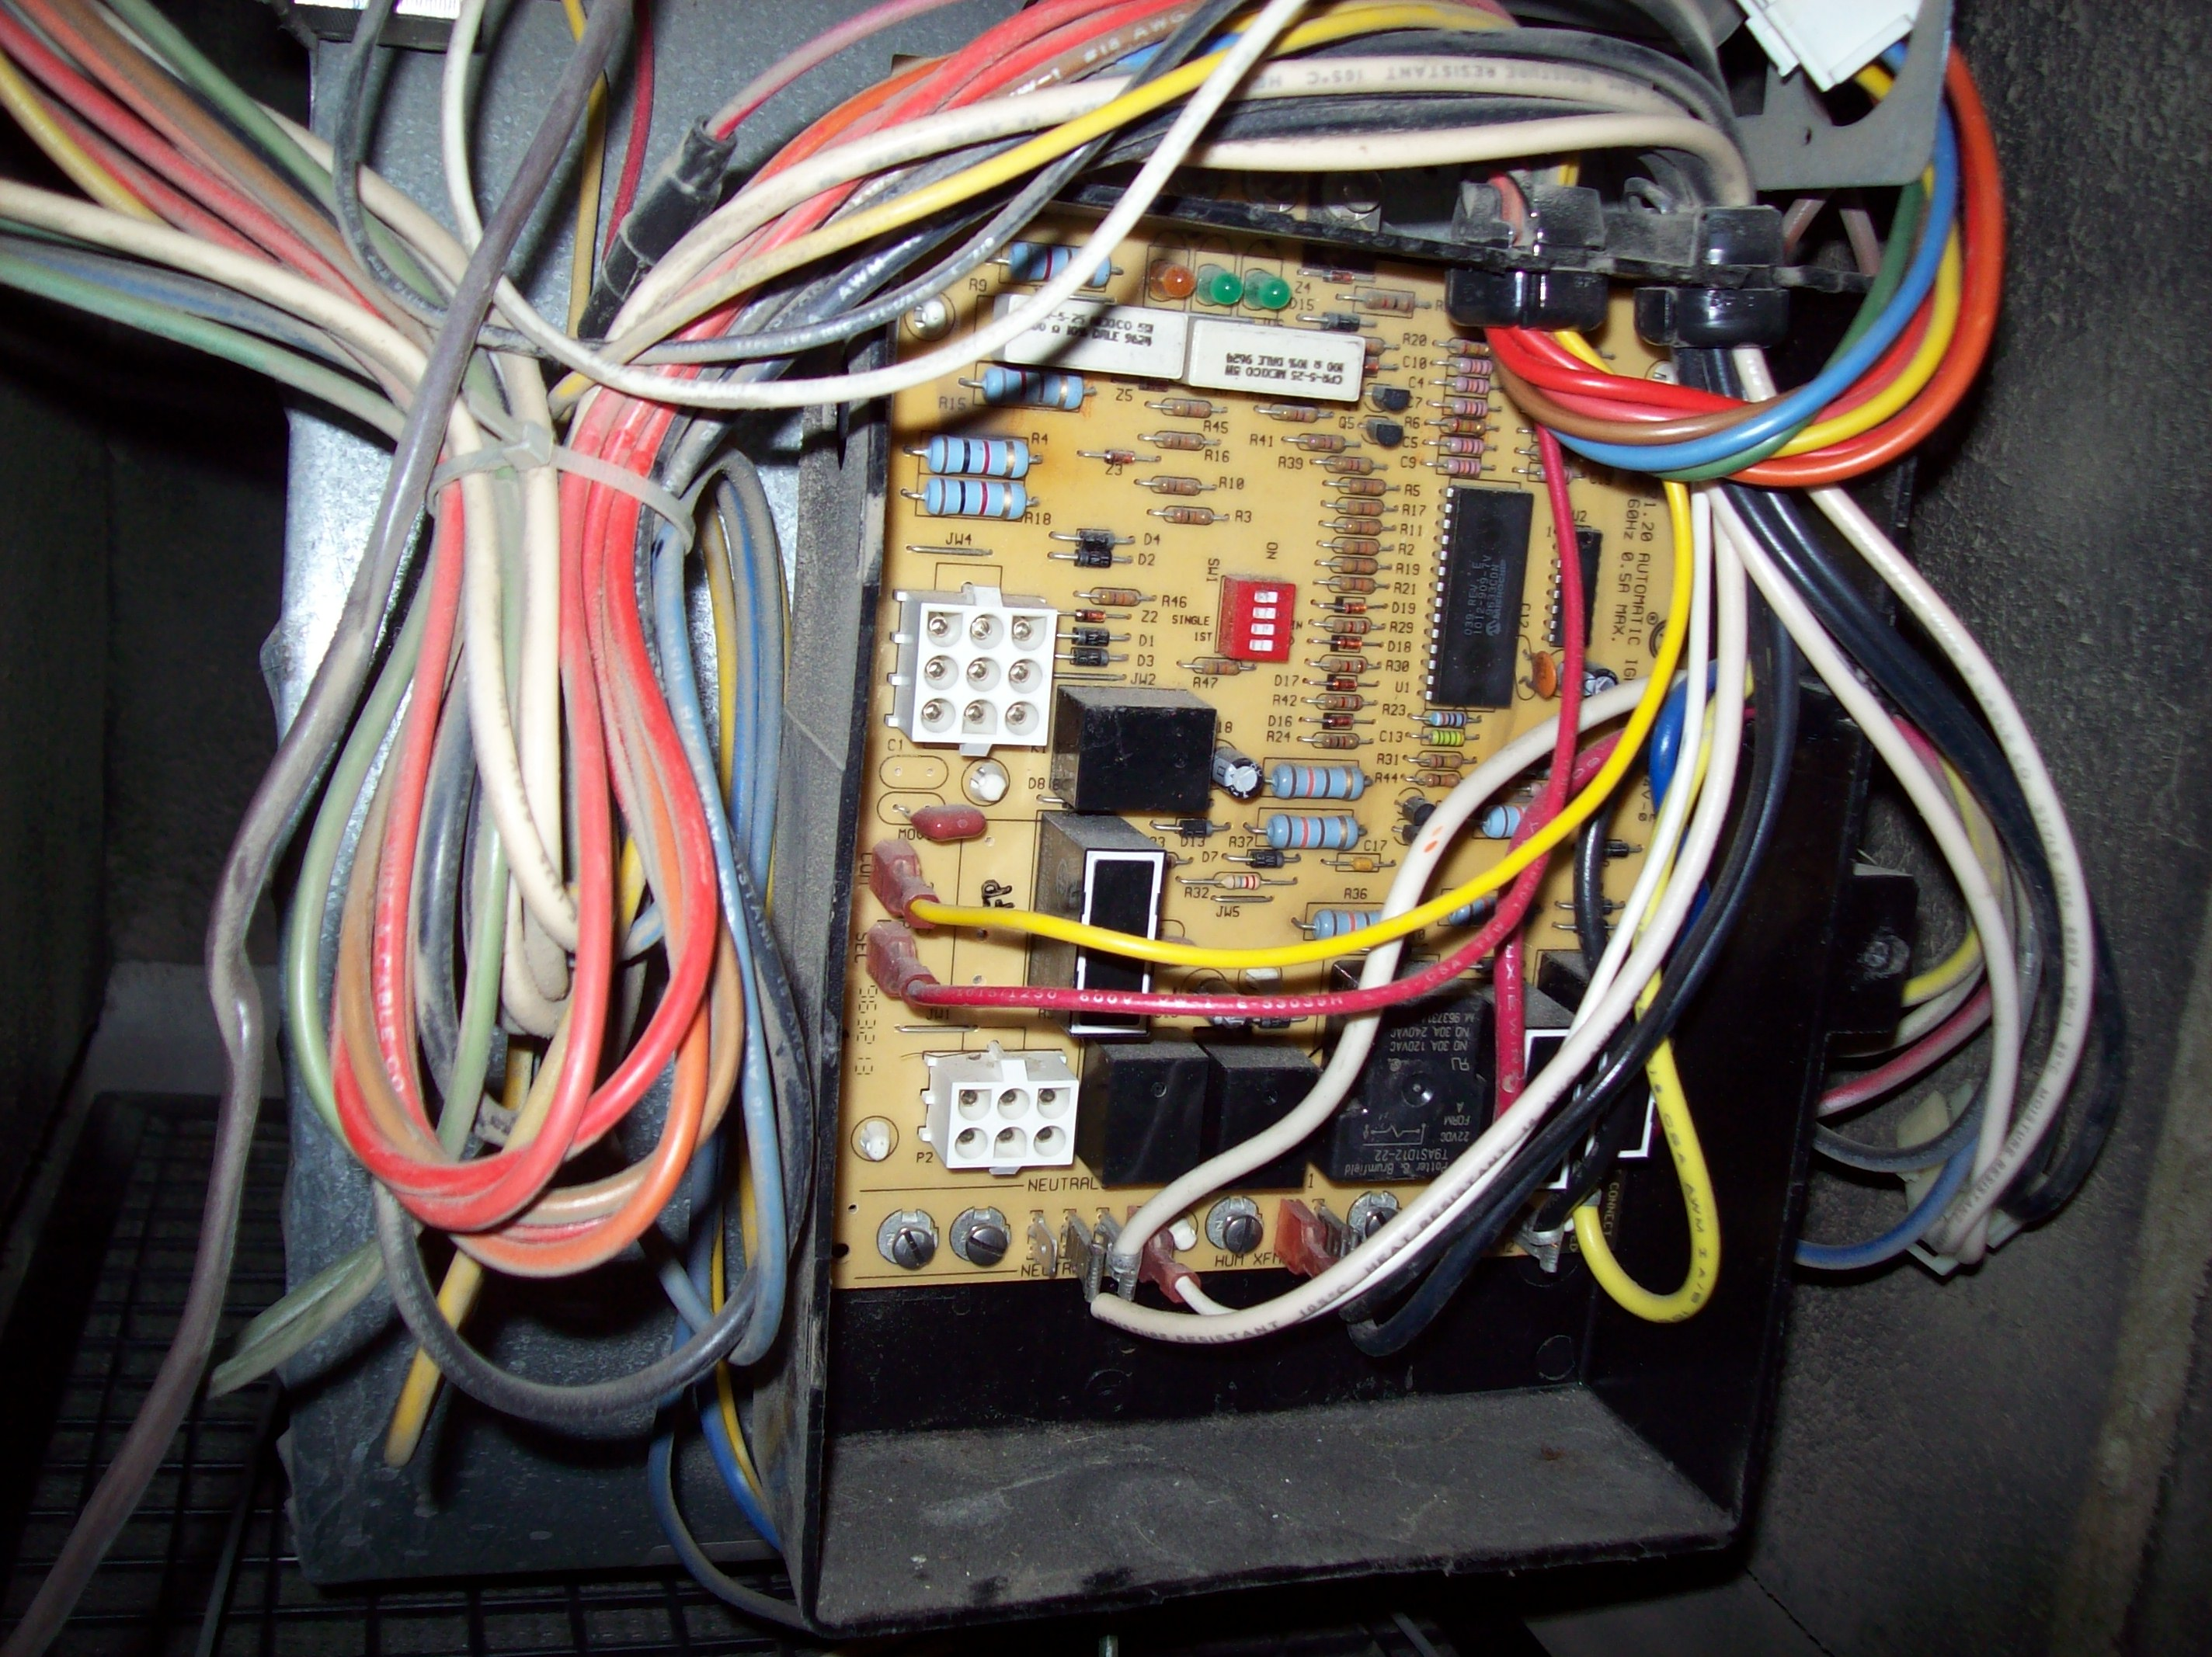 Rheem Criterion Ii Wiring Diagram About Keeprite Furnace I Have A With 62 24080 01 Fan Control Board Ducane